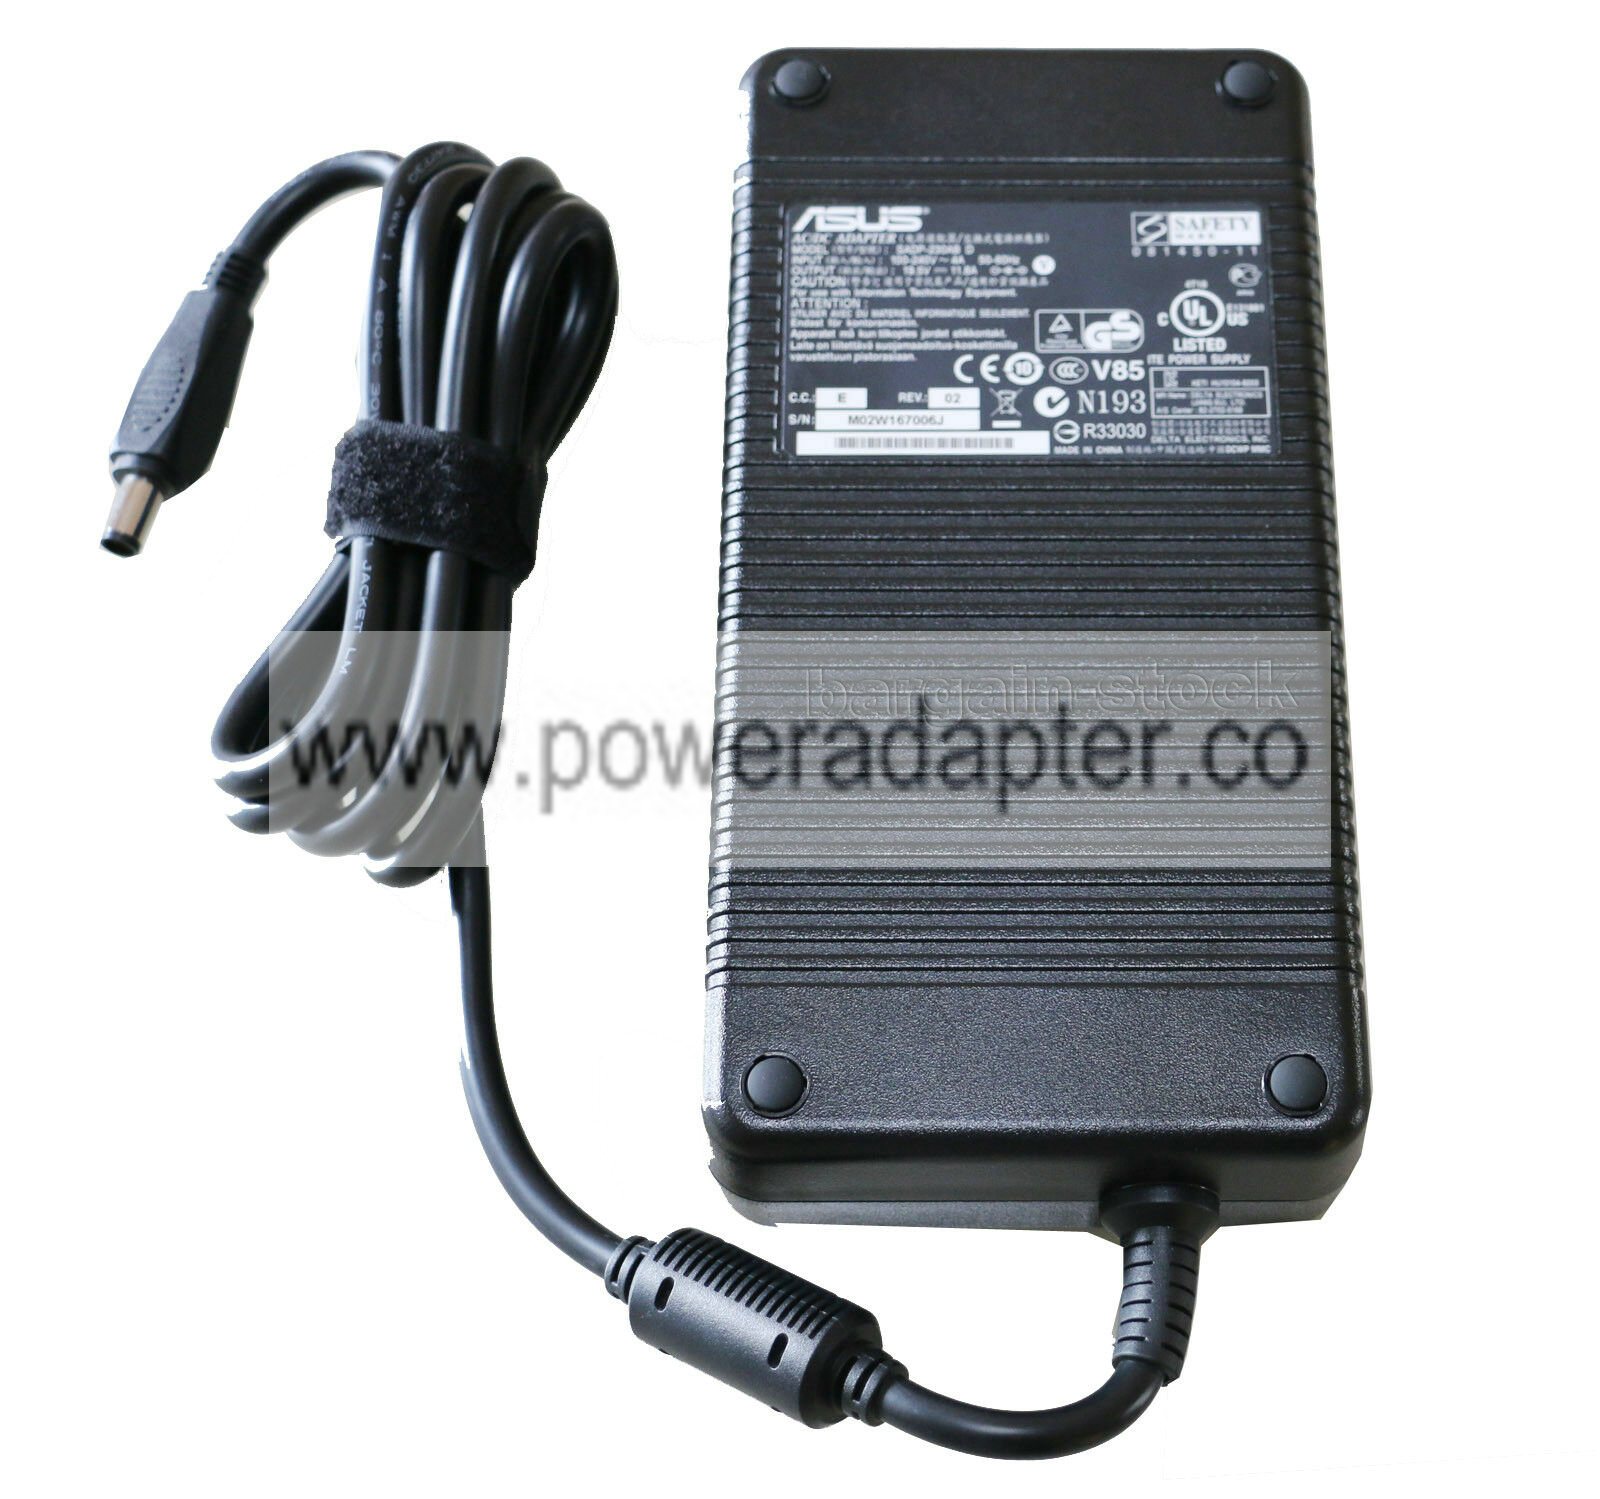 MSI ADP-230EB T ADP-230CB B New 19.5V 11.8A 230W AC Power Adapter For ASUS ROG